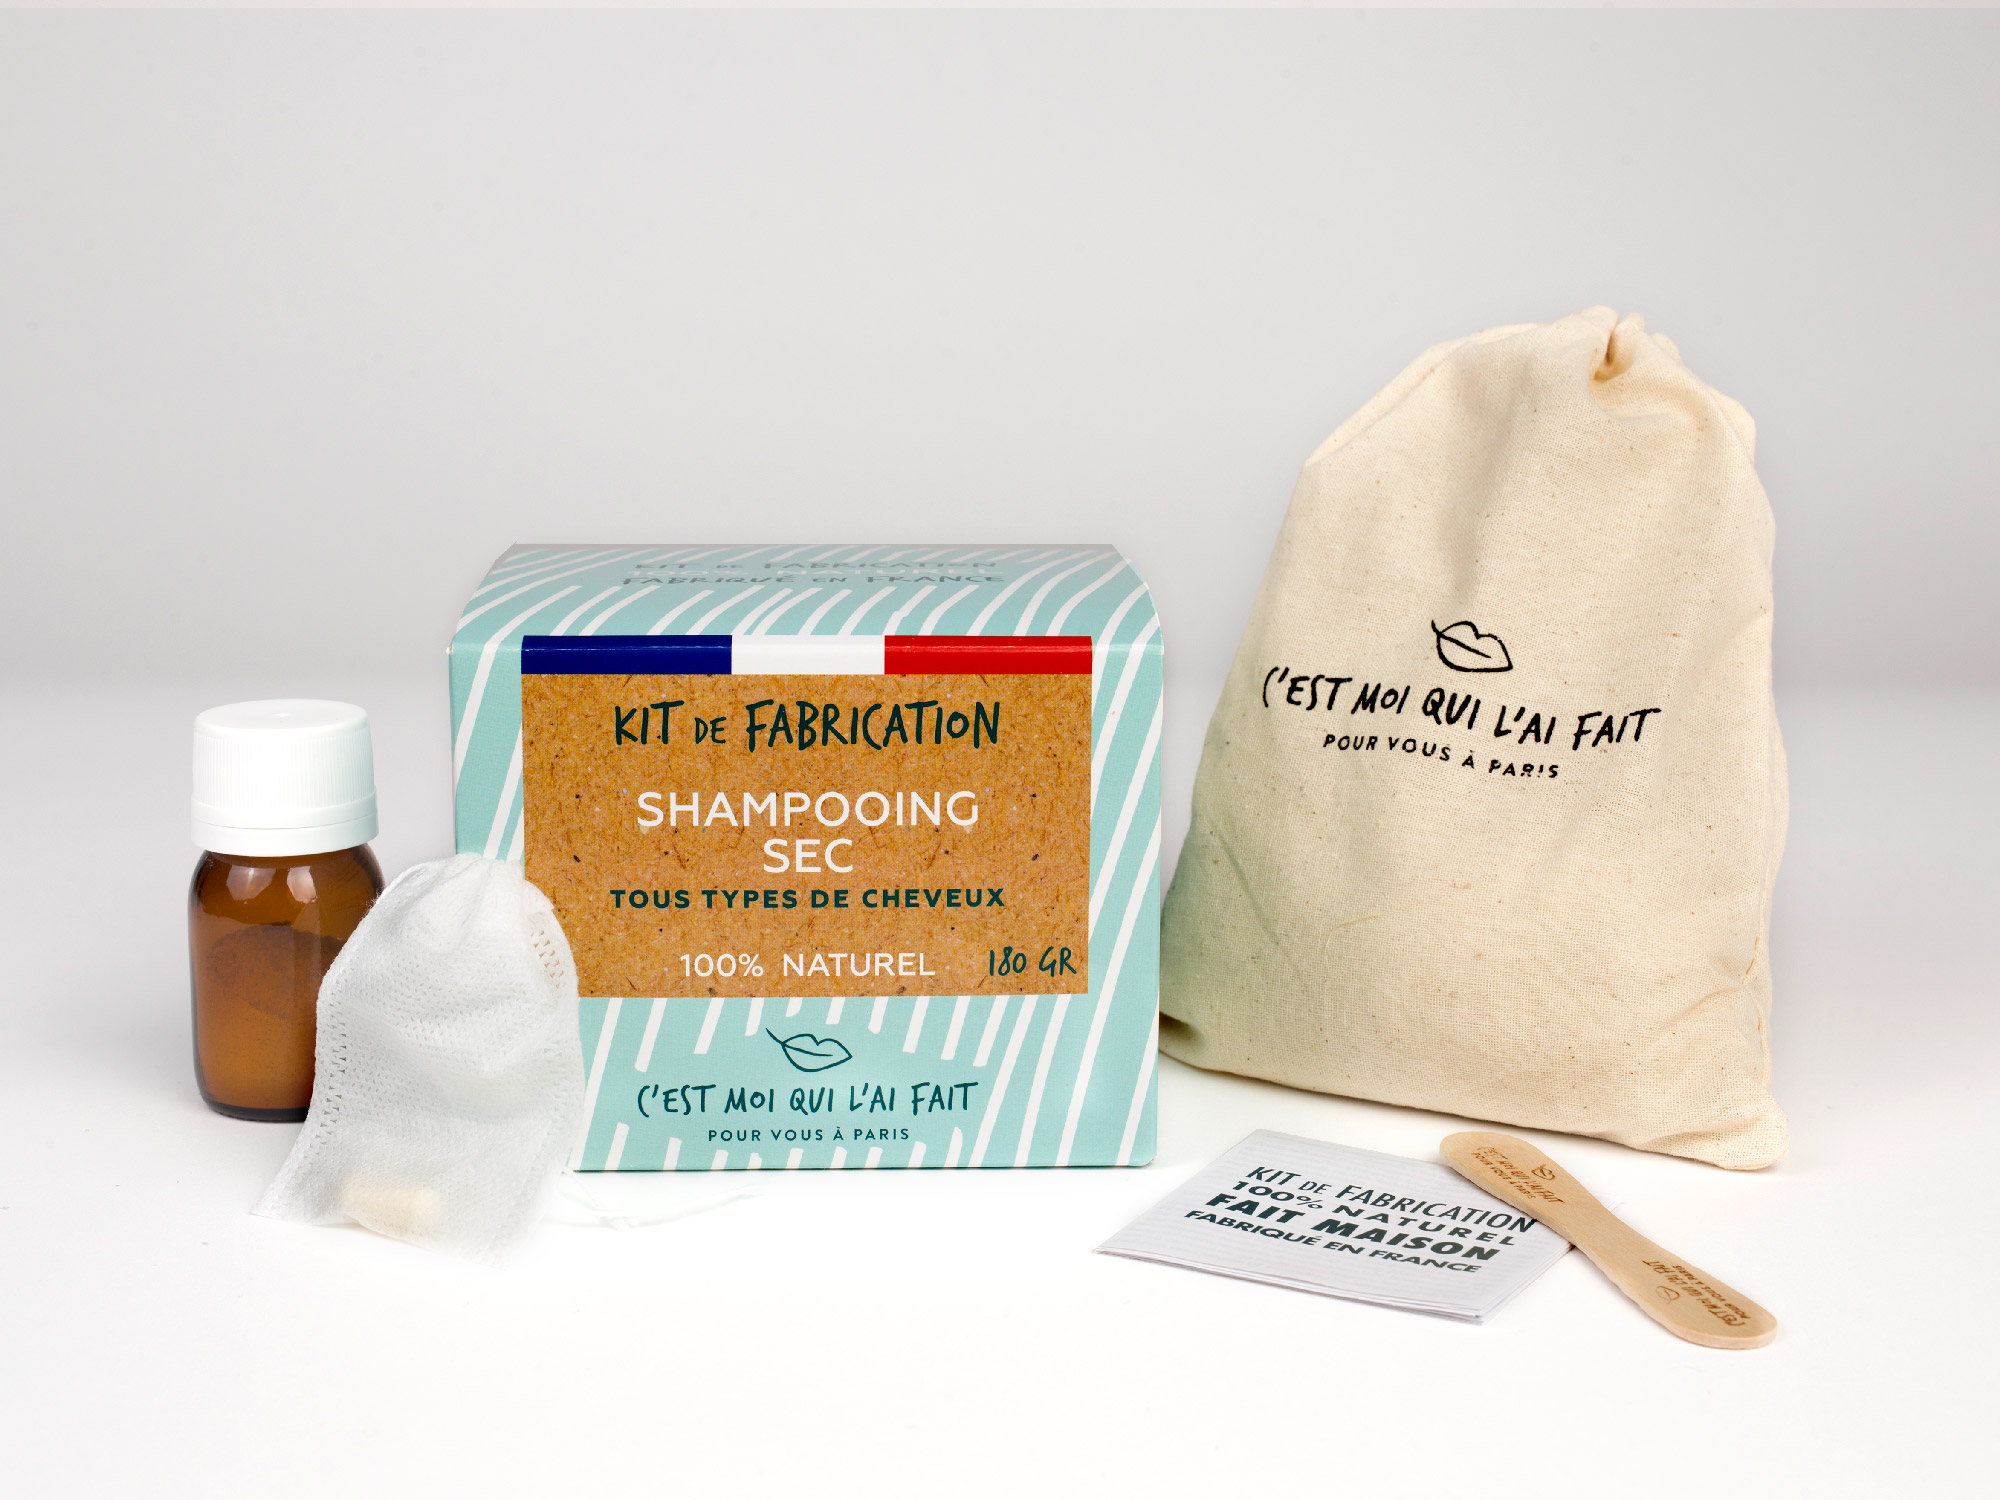 Kit de Fabrication Shampooing sec